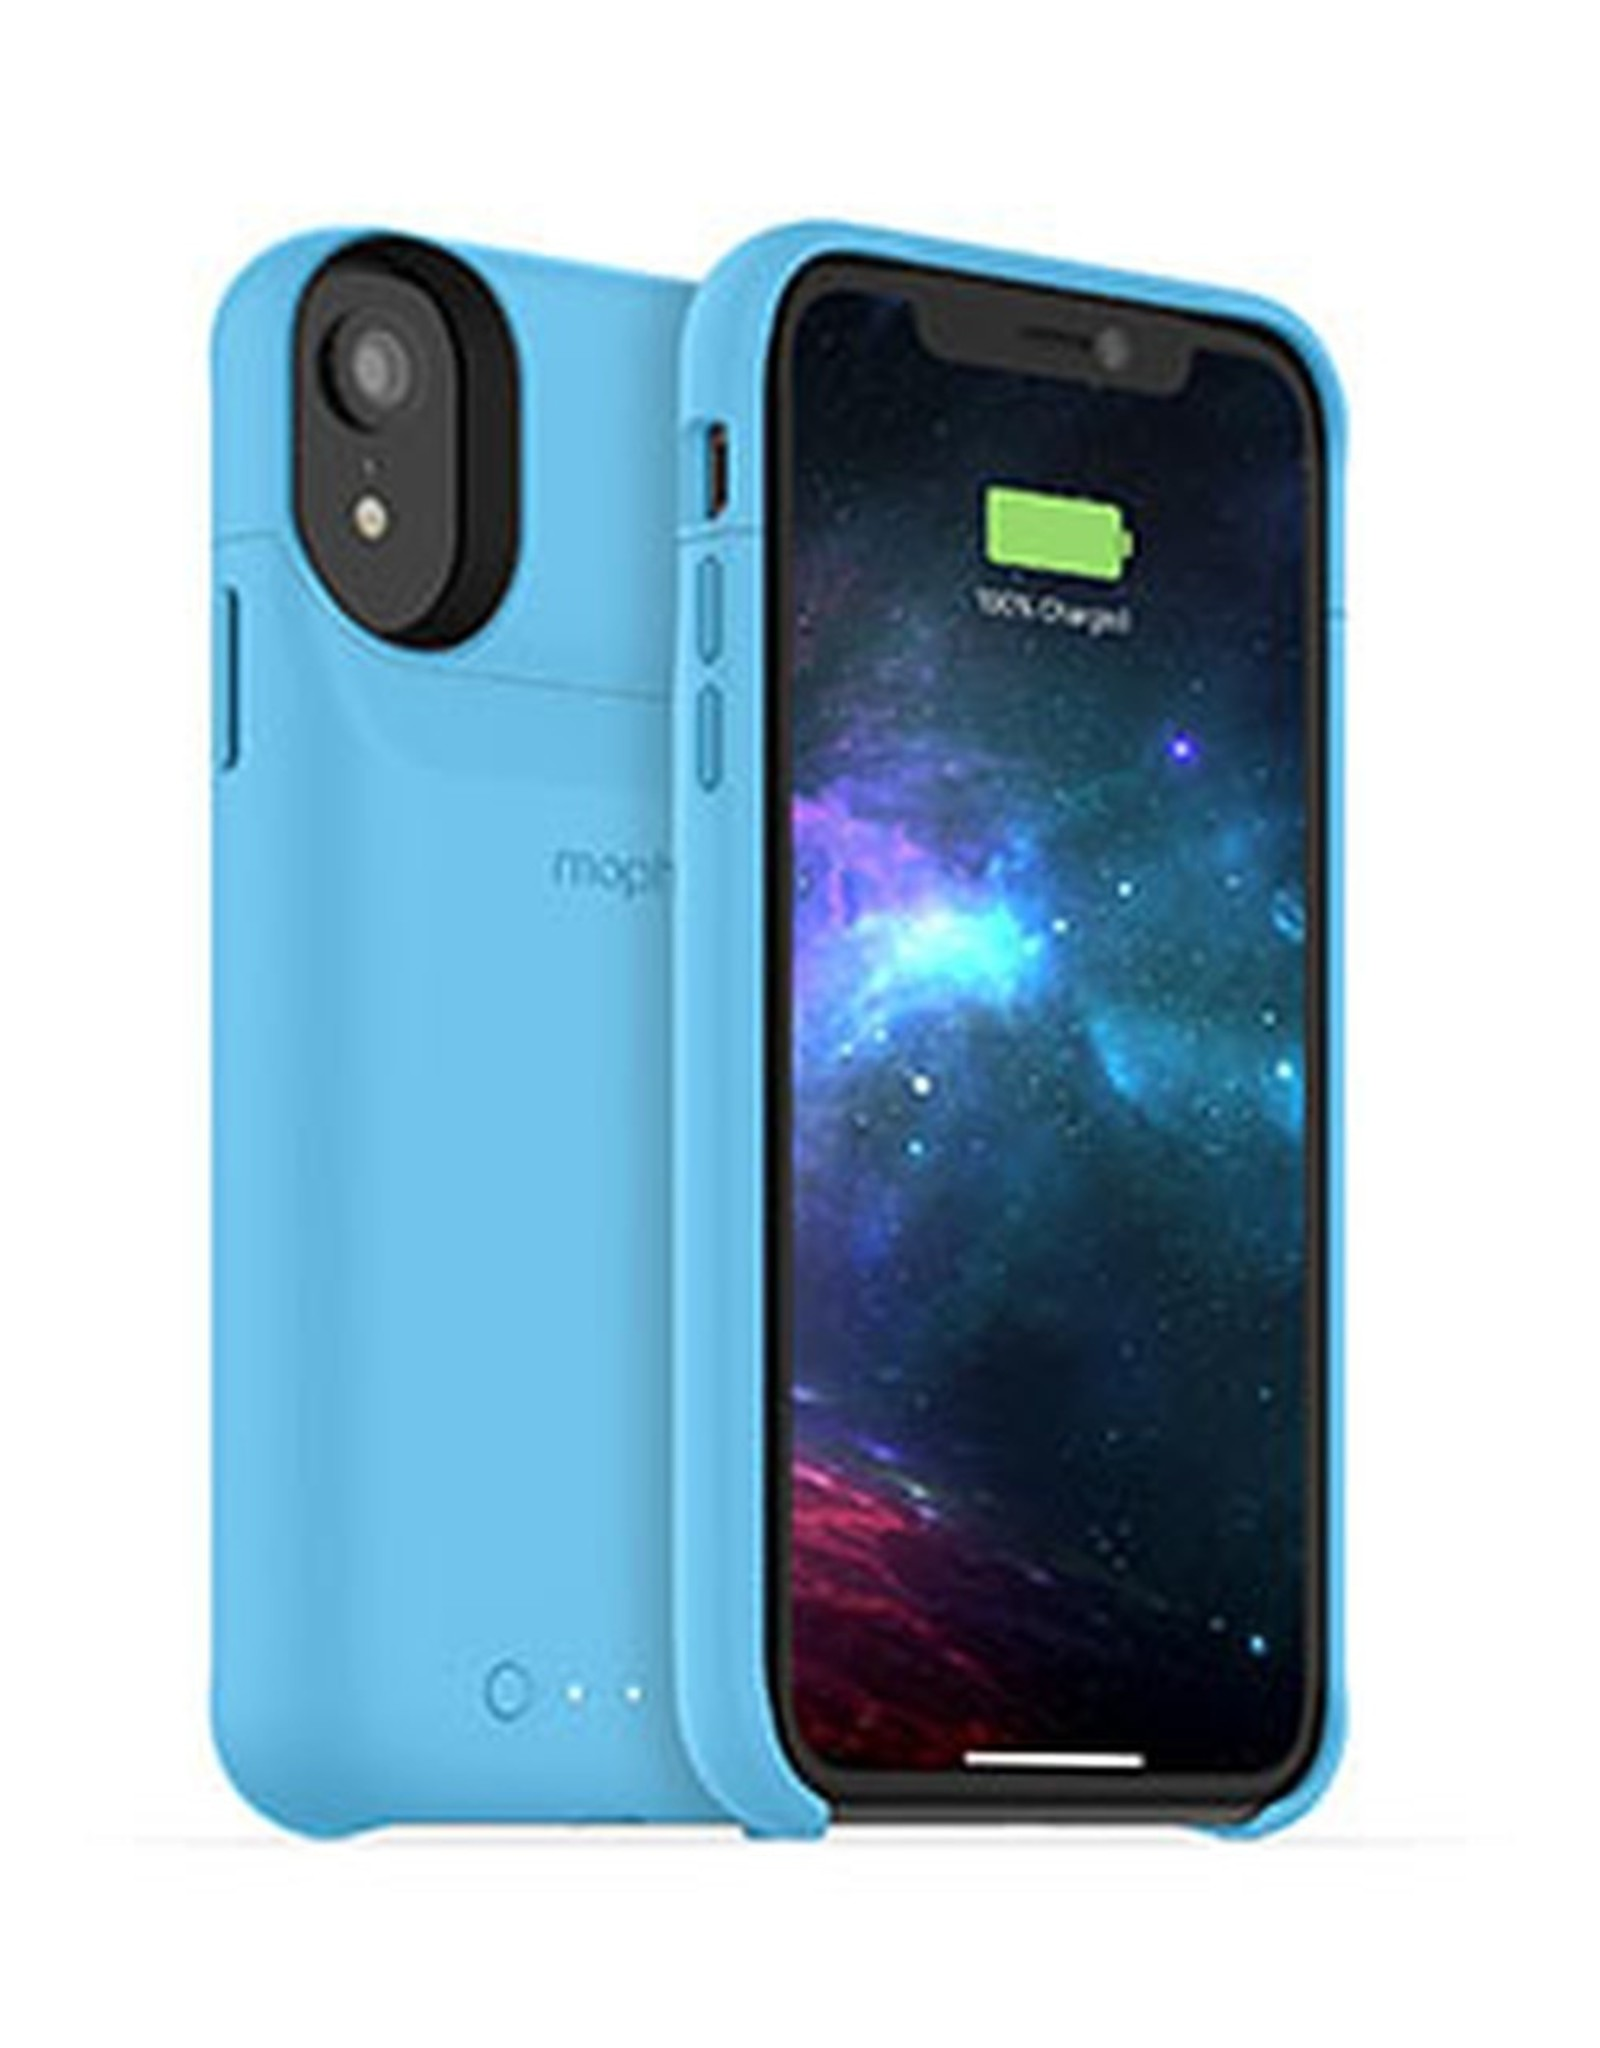 Mophie mophie iPhone Xs blue juice pack access case w/ Qi